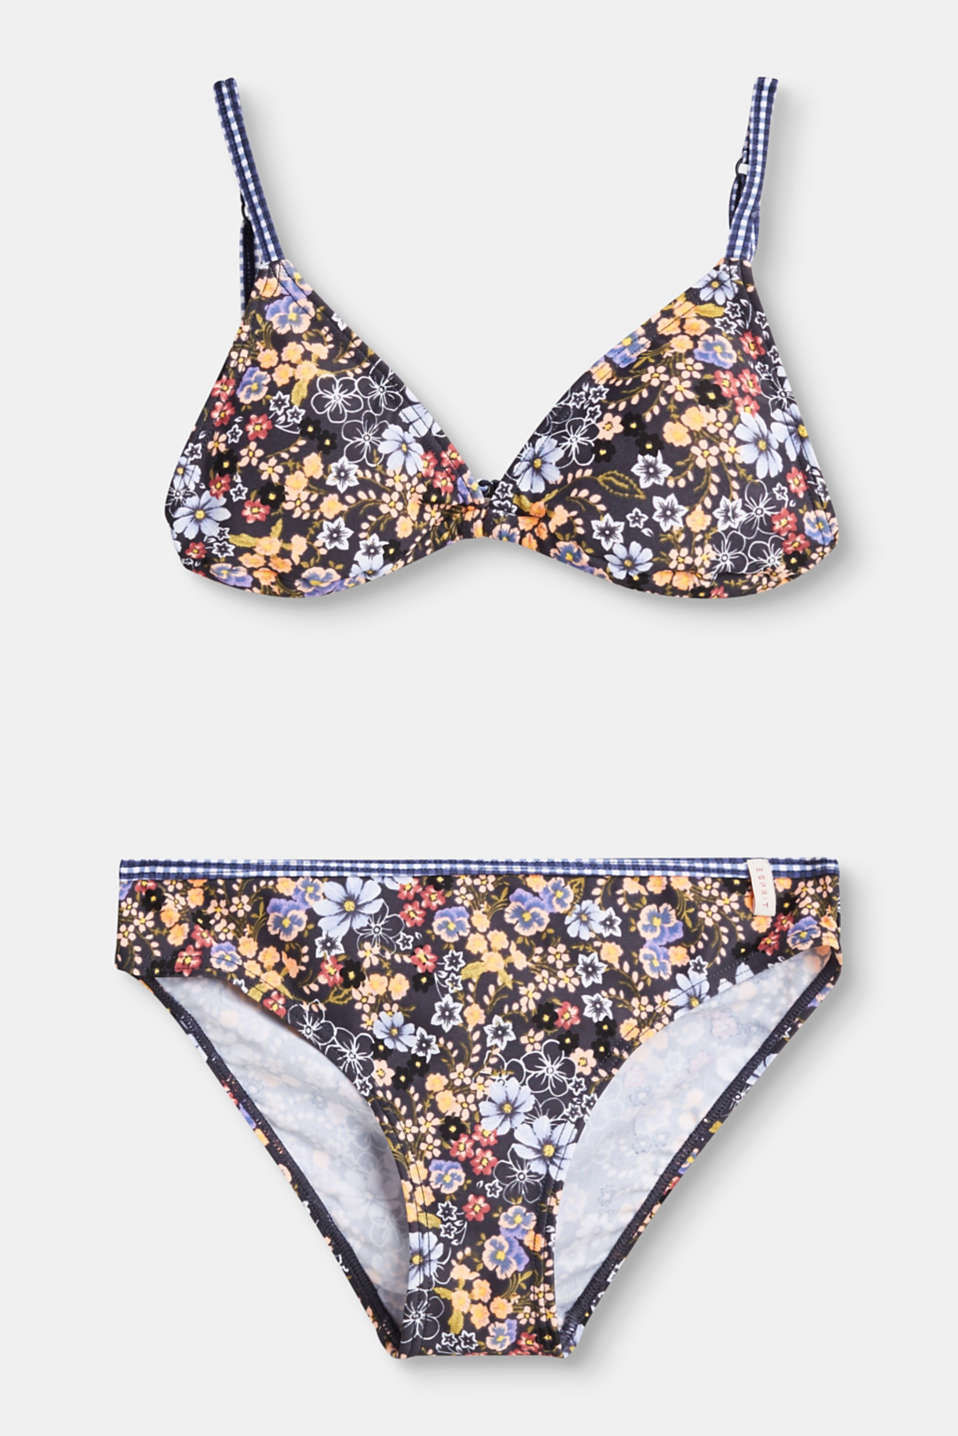 Esprit - Triangle top bikini with a floral print